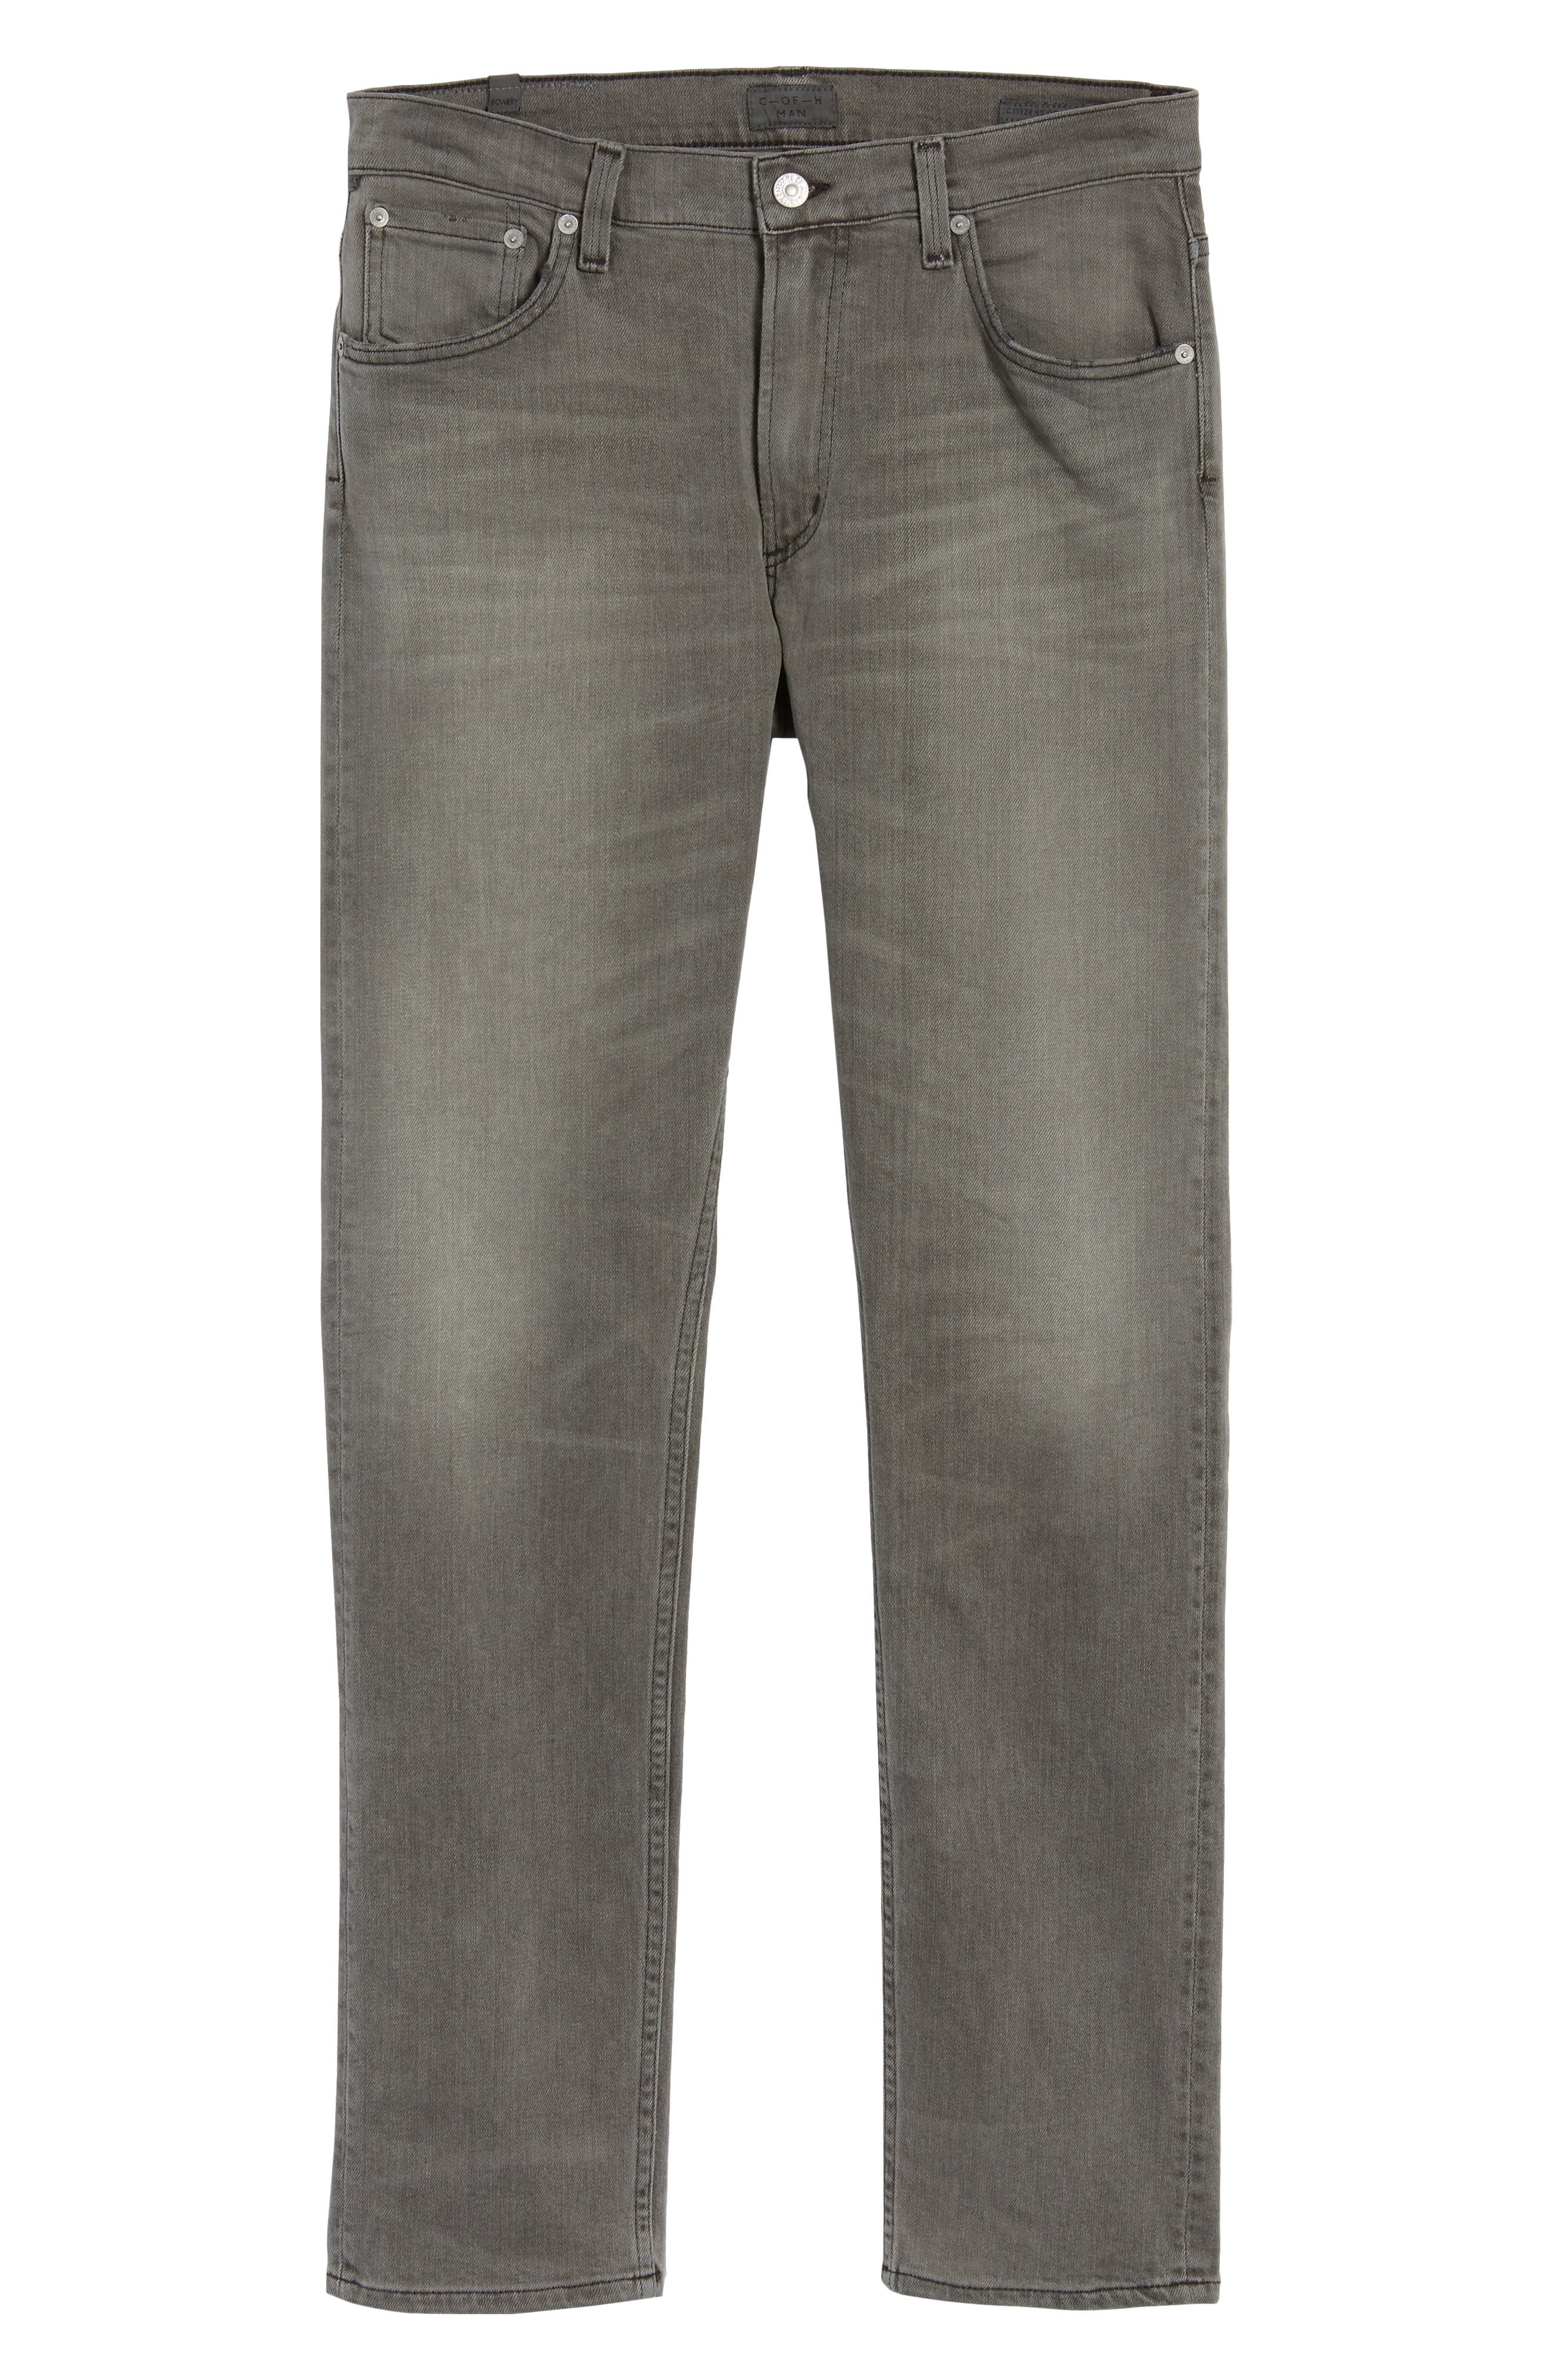 Bowery Slim Fit Jeans,                             Alternate thumbnail 6, color,                             LEON